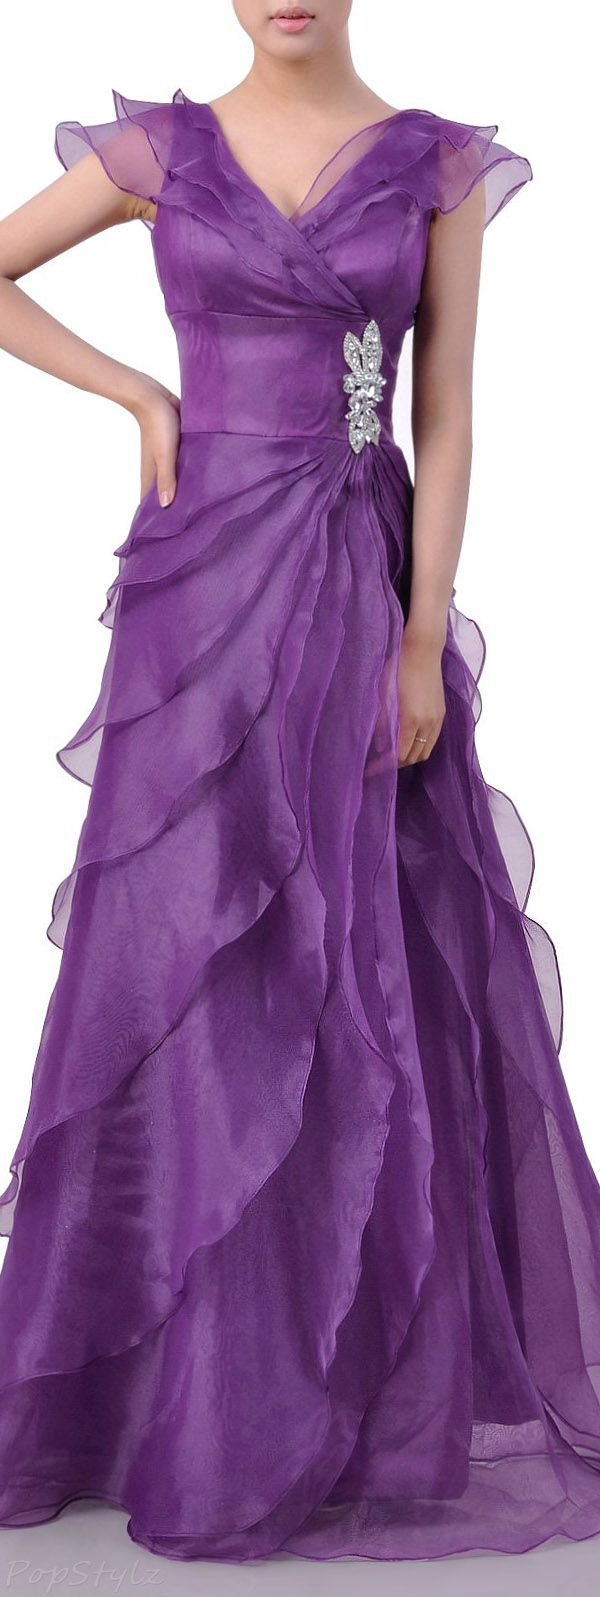 Adorona Long A-Line Ruffled Formal Evening Gown